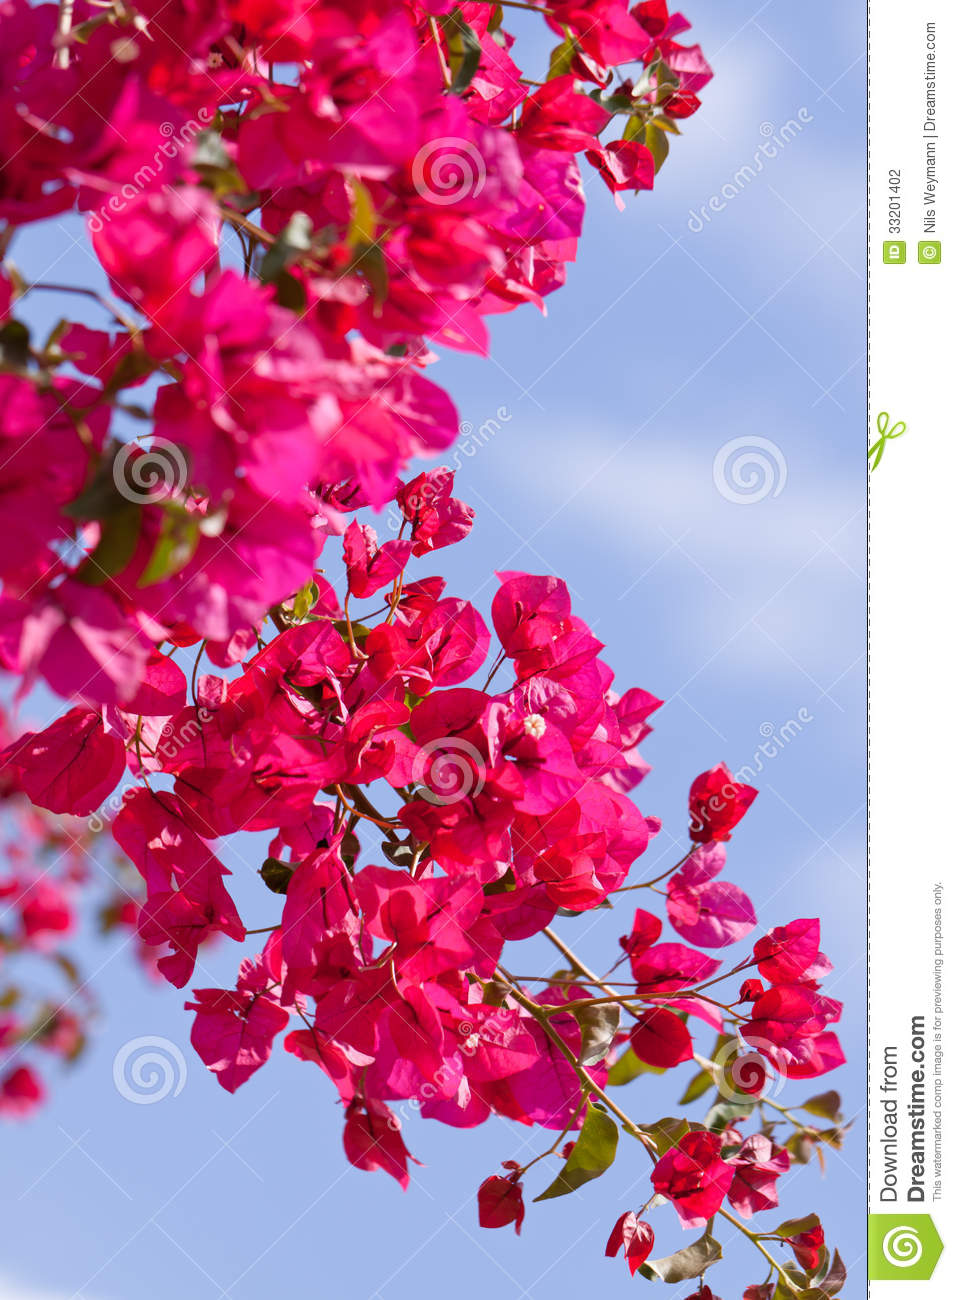 Beautiful pink flowers in the garden stock photography image - Beautiful Pink Magenta Bougainvillea Flowers And Blue Sky